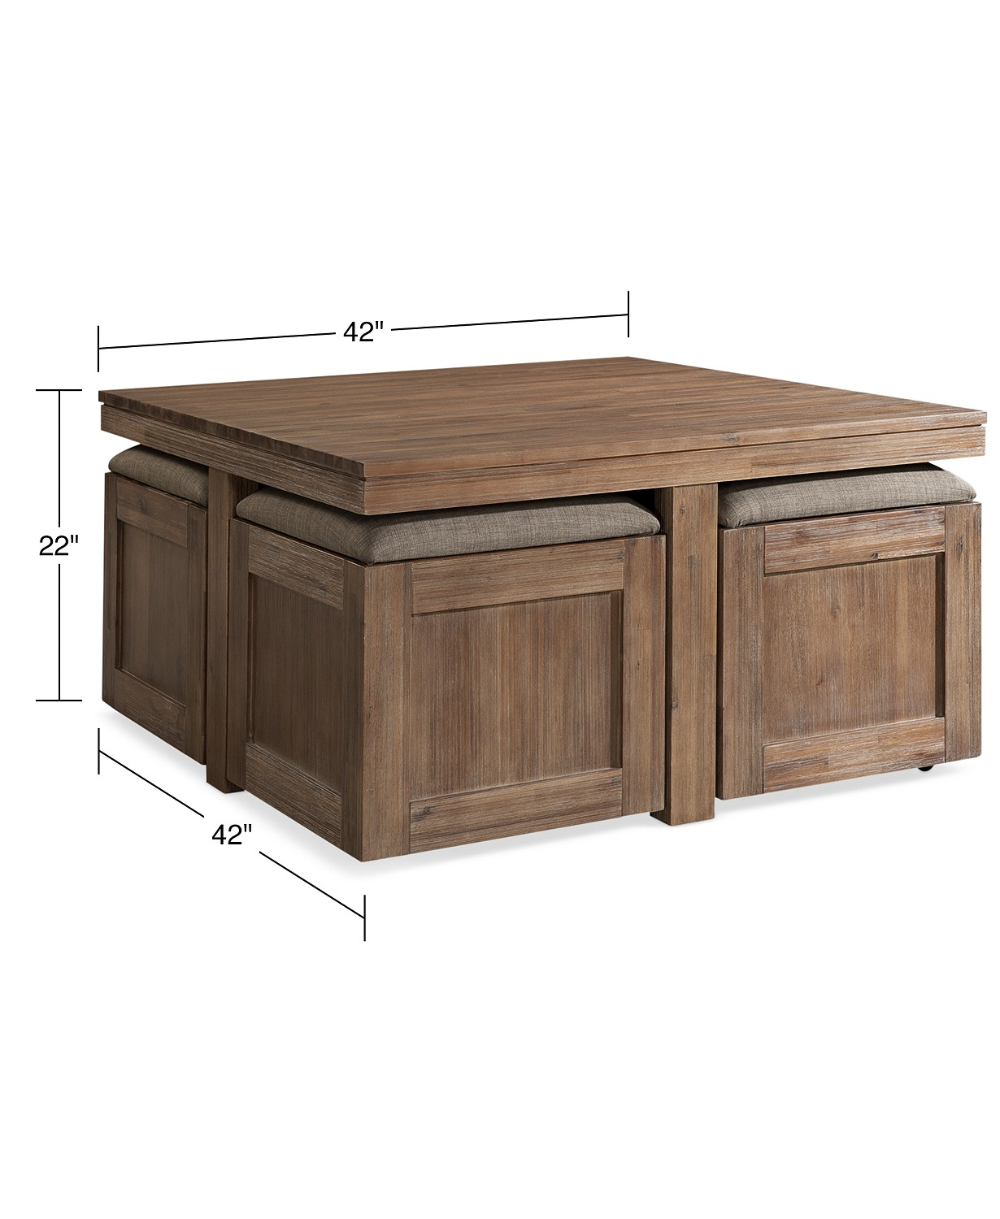 Furniture Chambers Storage Coffee Table Furniture Macy S Coffee Table Table Furniture Coffee Table With Storage [ 1500 x 1230 Pixel ]